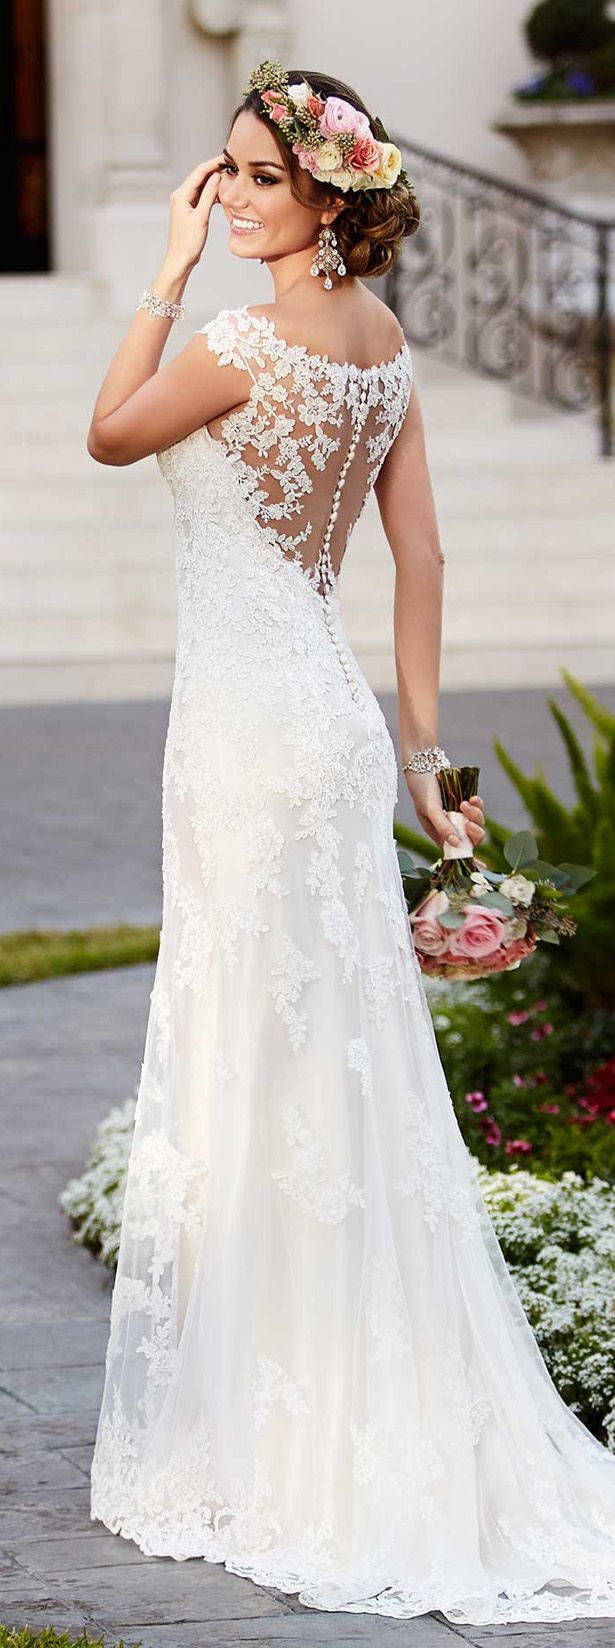 BEST Wedding Dresses of 2015 - Stella York Spring 2016